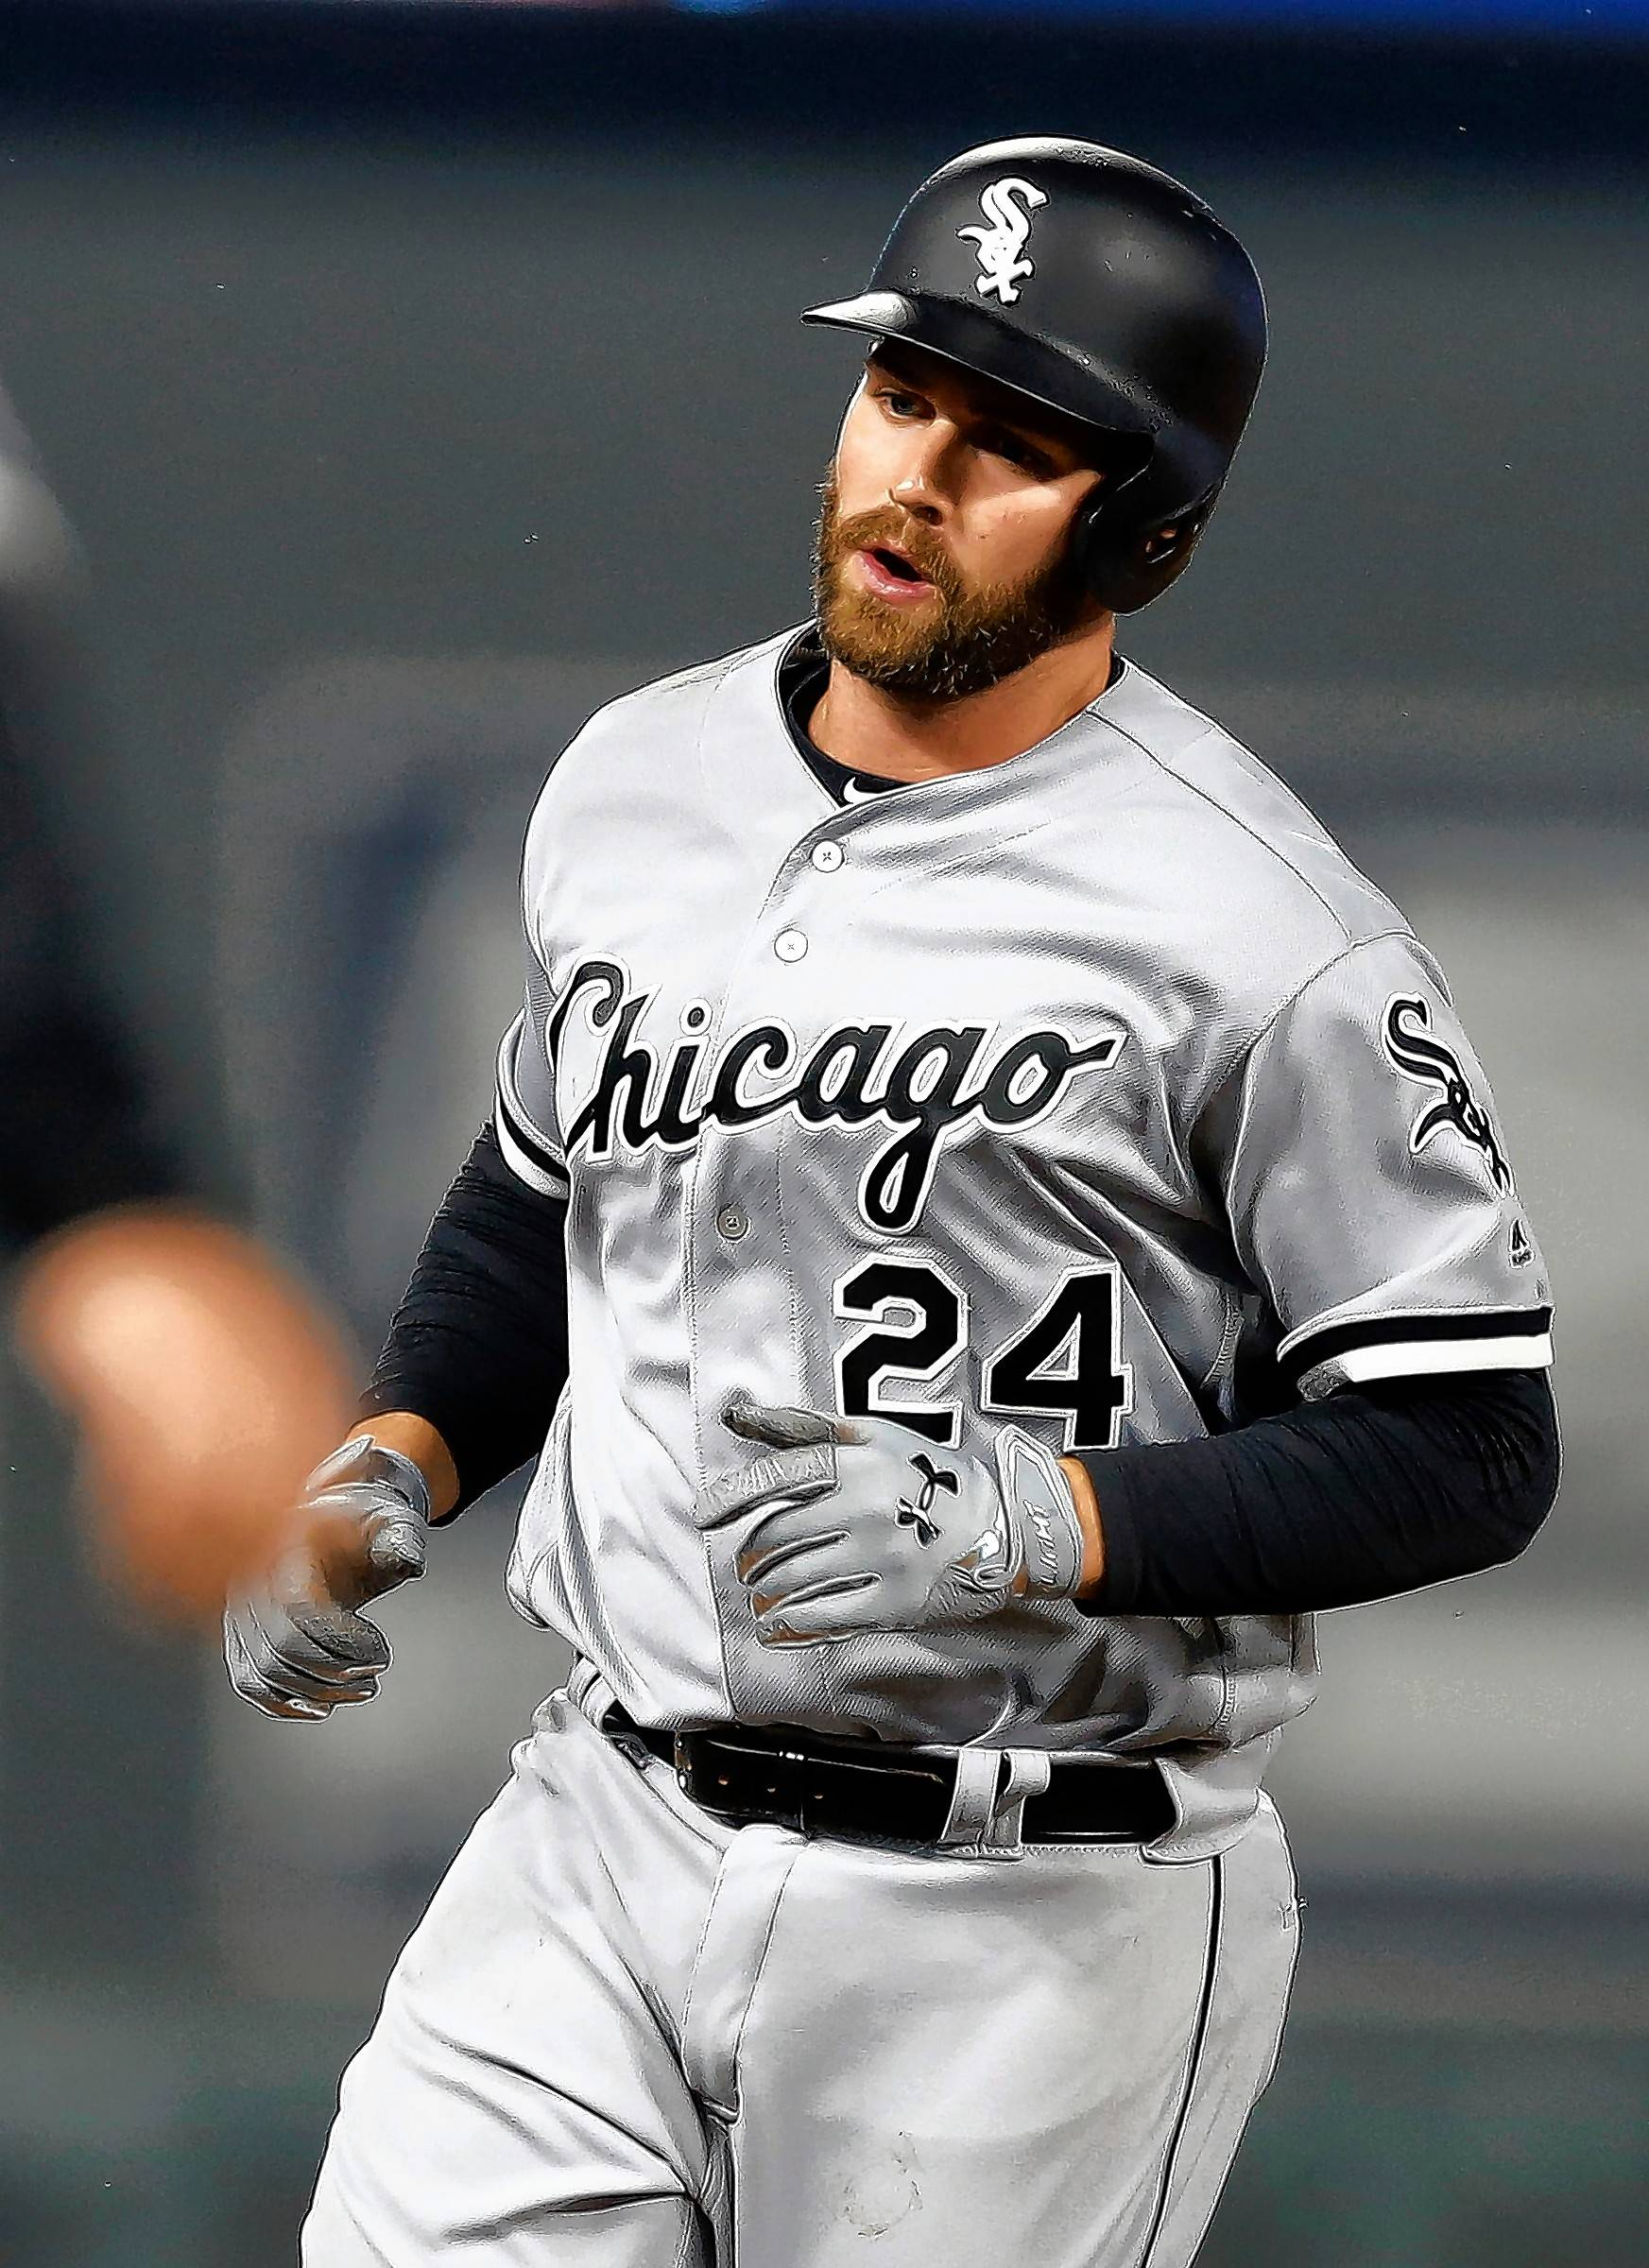 Chicago White Sox' Matt Davidson rounds third base on his solo home run off Minnesota Twins relief pitcher Ryan Pressly during the seventh inning of a baseball game Friday, April 14, 2017, in Minneapolis. (AP Photo/Jim Mone)